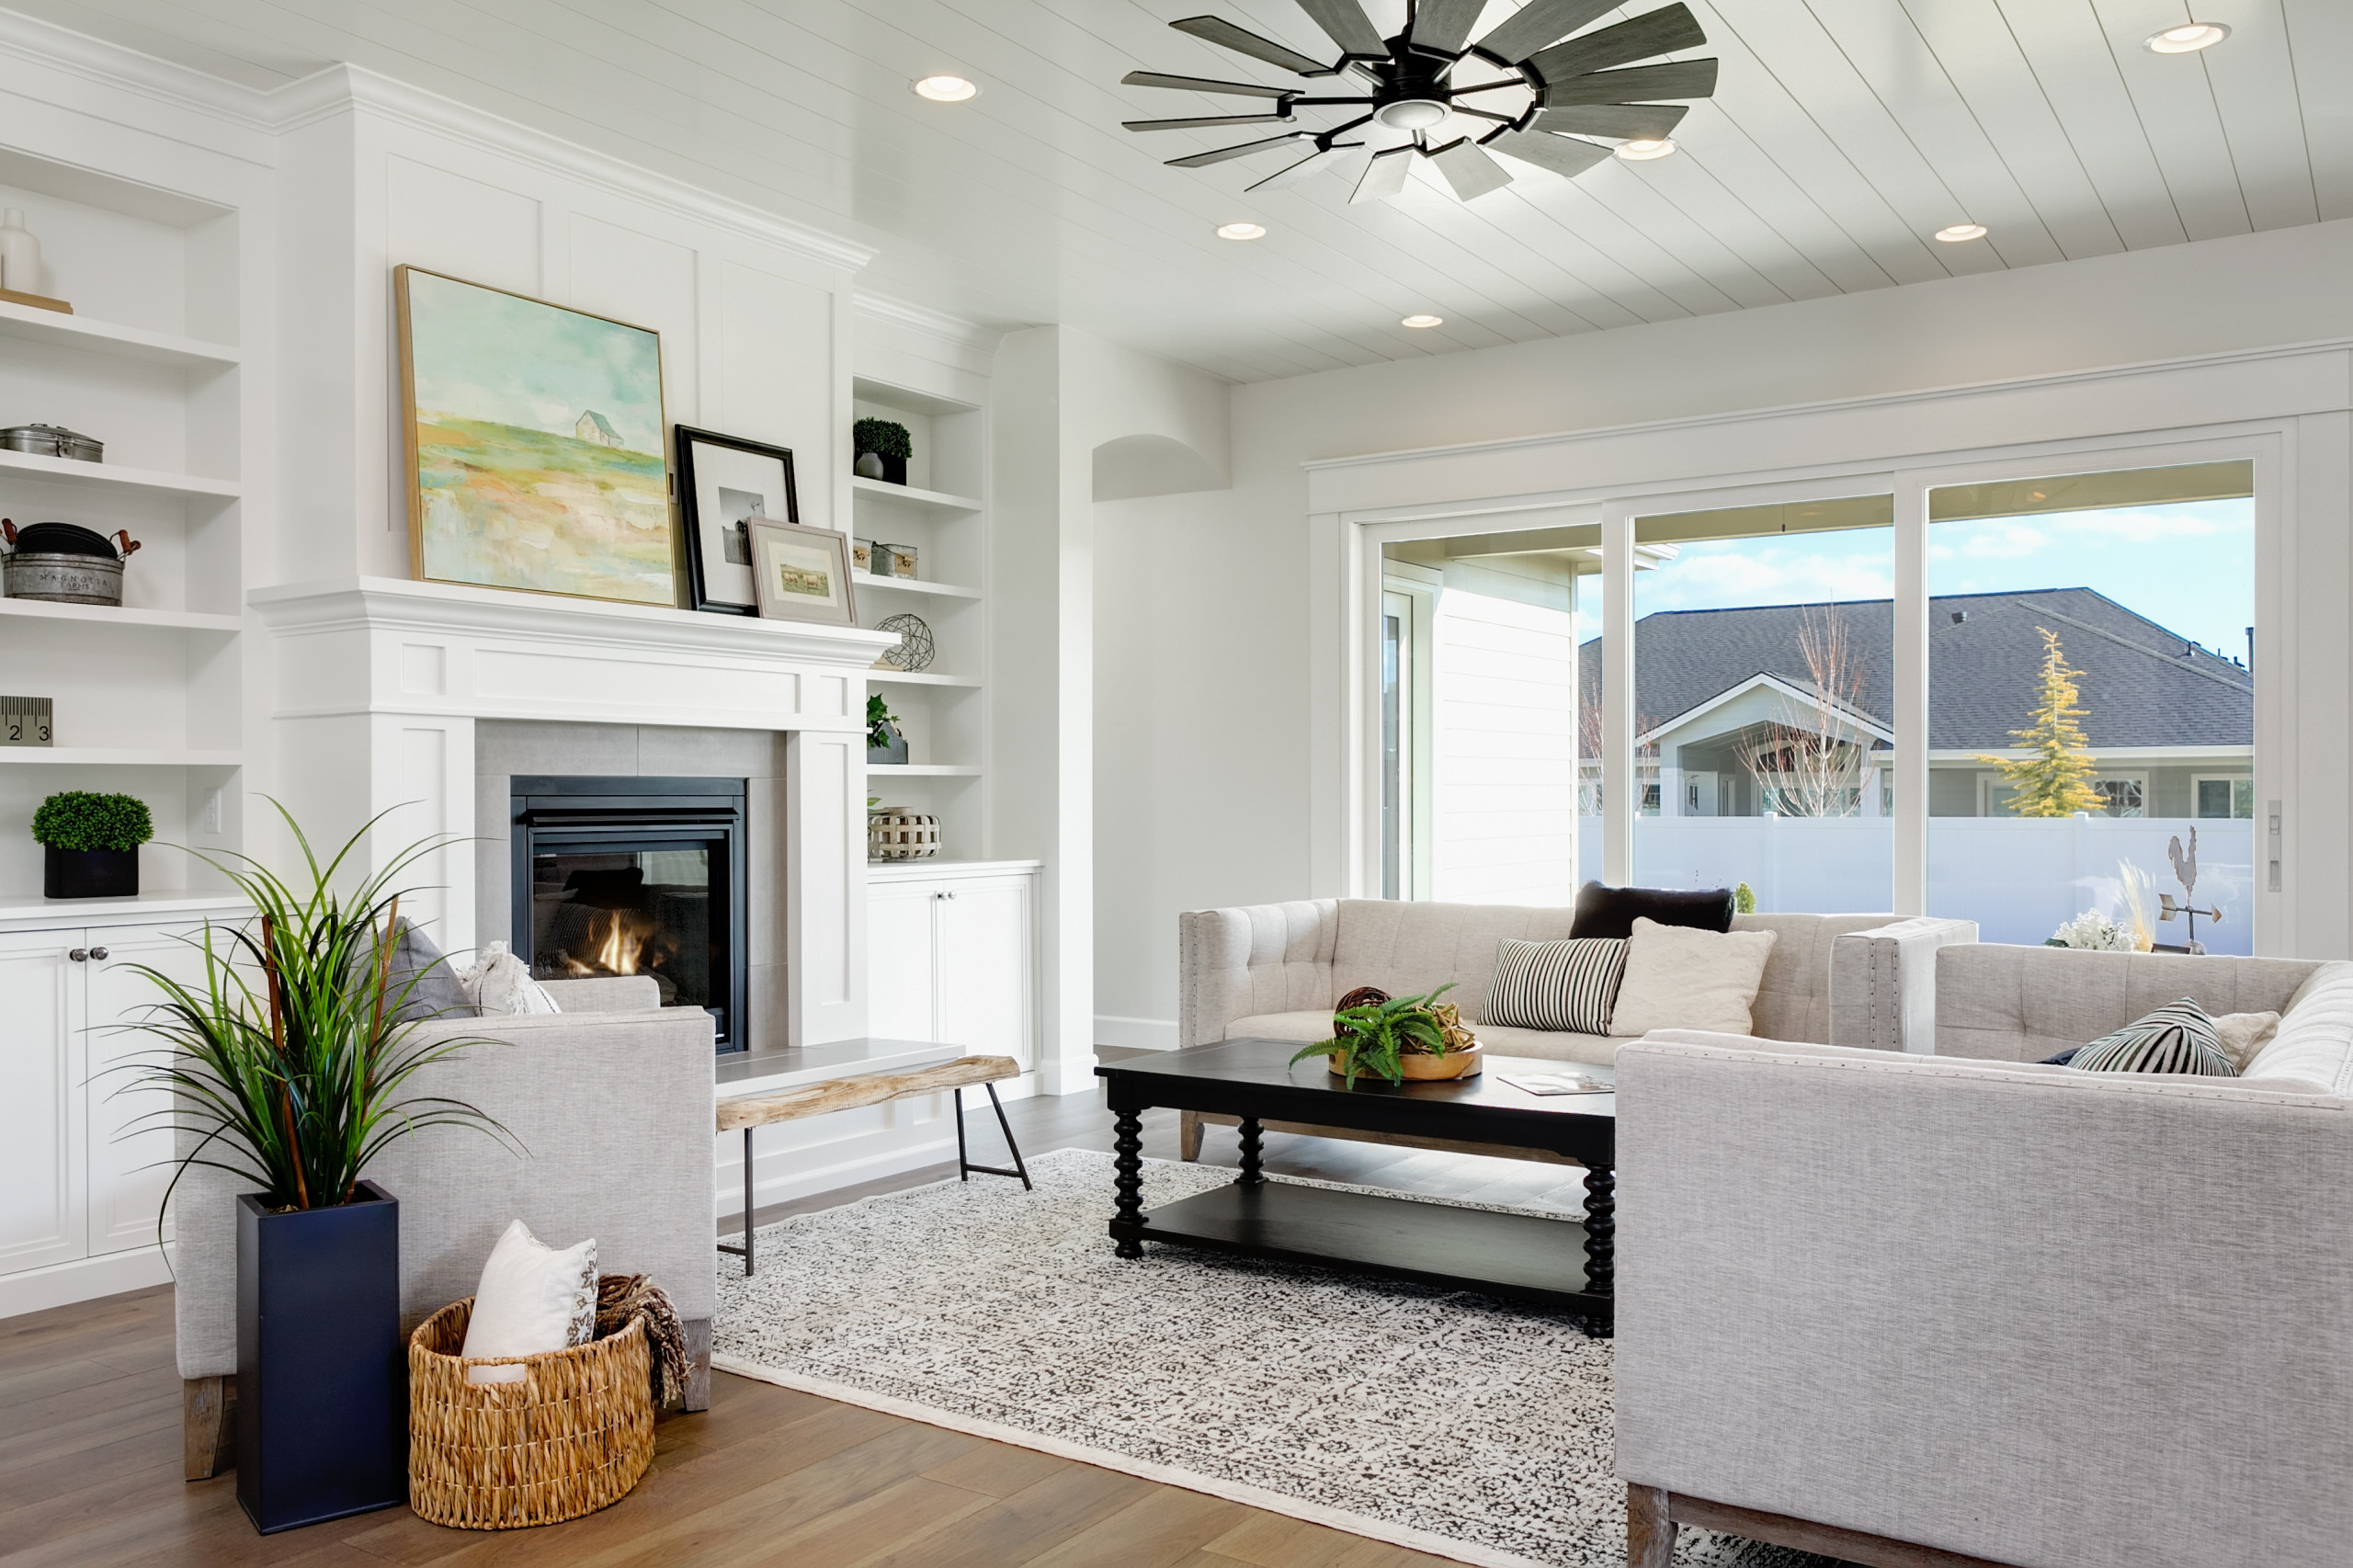 75 Beautiful Transitional Living Space Pictures Ideas December 2020 Houzz